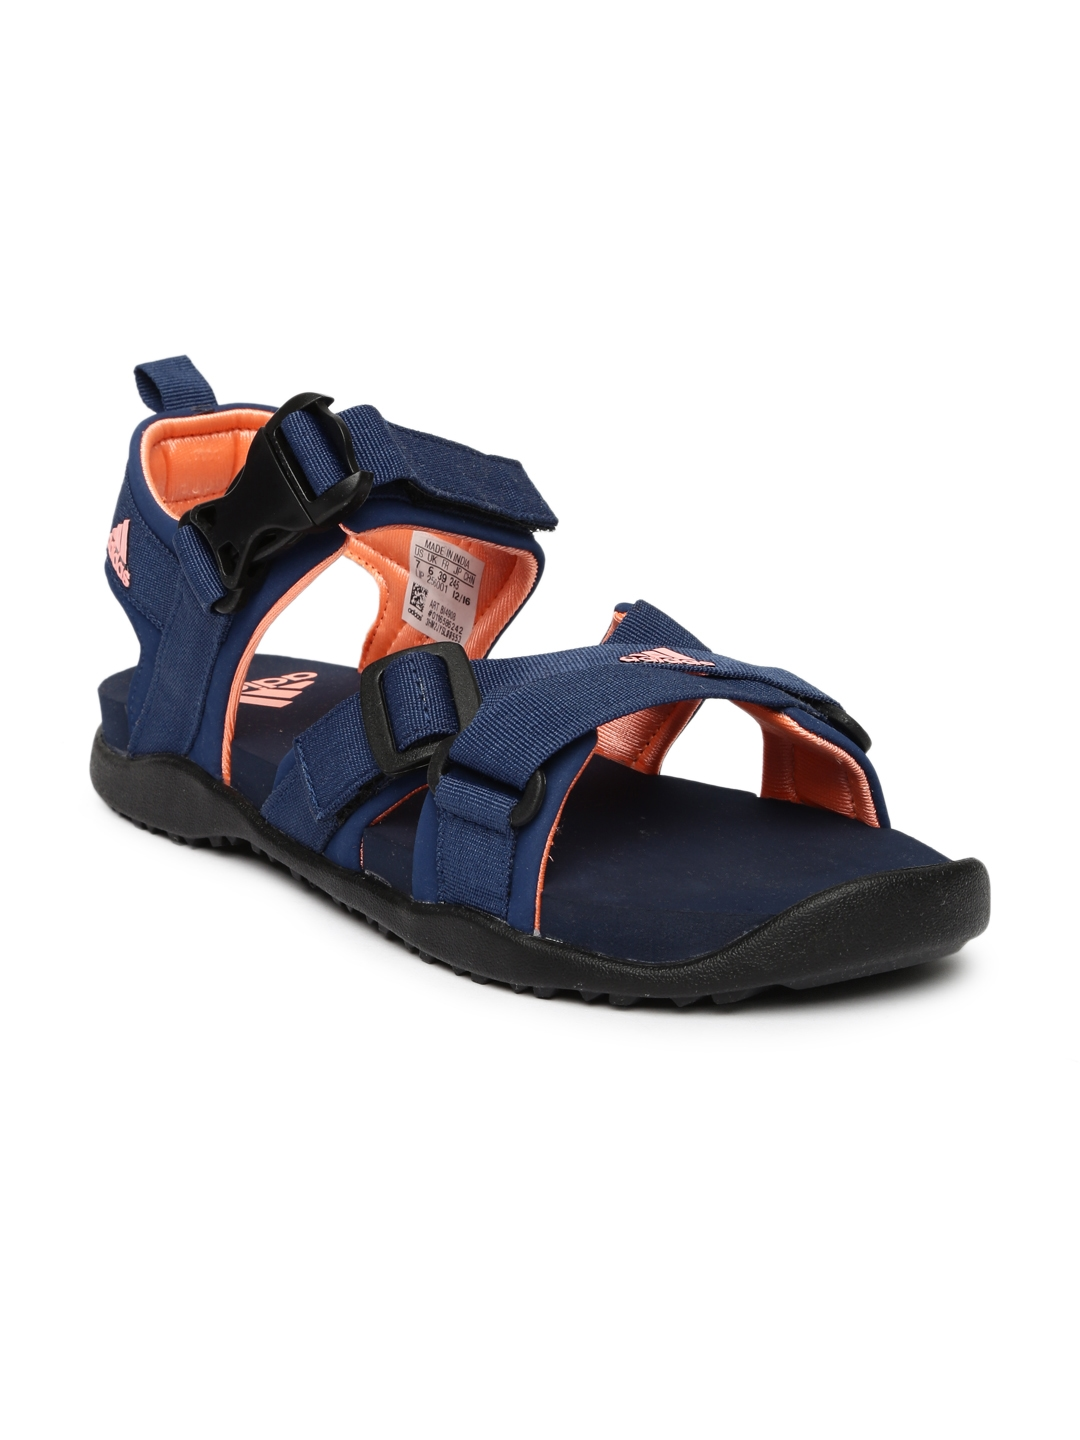 a6c6c09f13fb sandals adidas online on sale   OFF35% Discounts